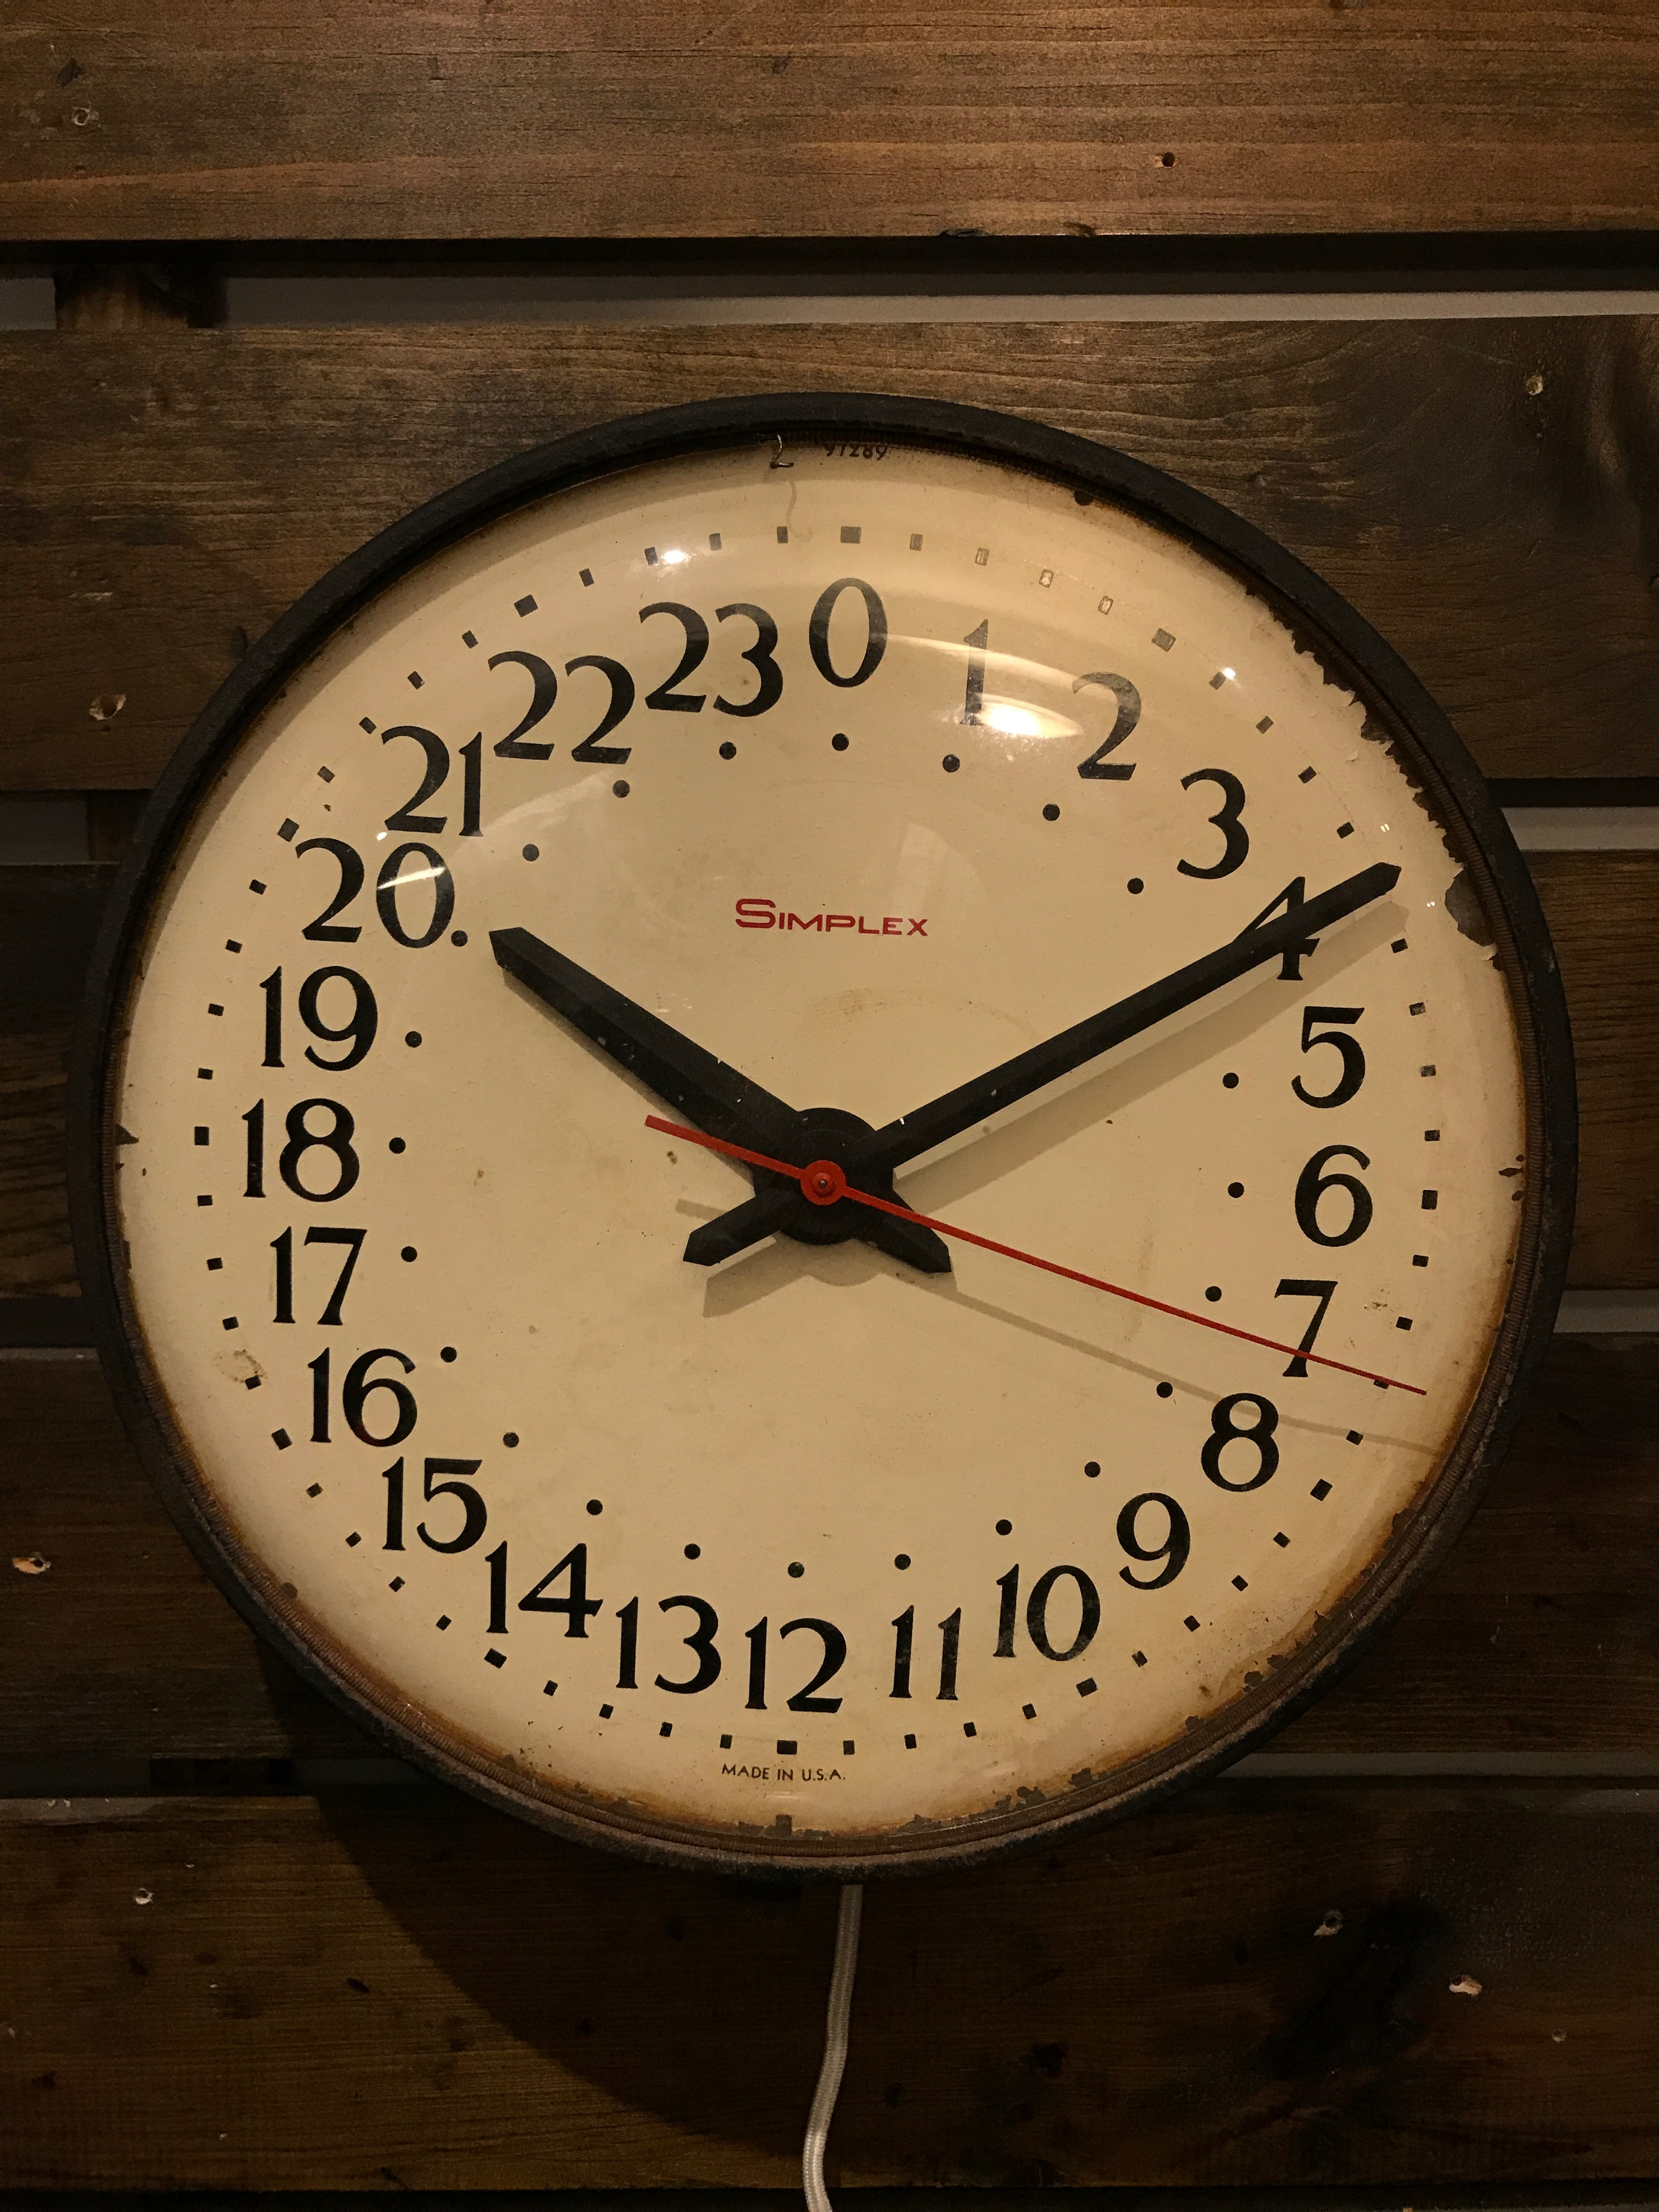 Military Time Clock >> 24 Hour Military Time Simplex Usa This Is A Standard Military